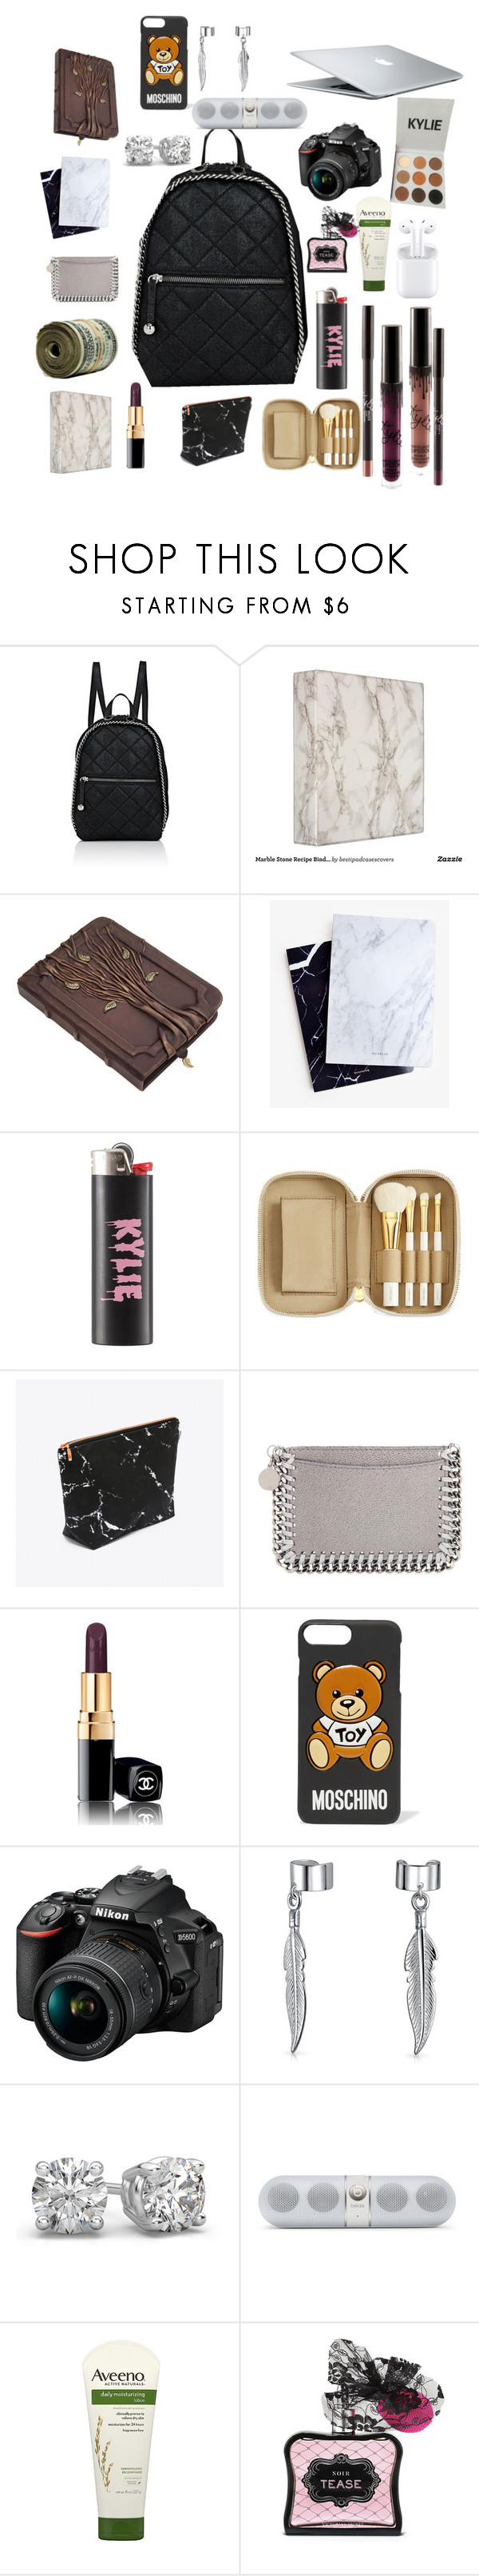 """""""what's in my bag"""" by yeah-dhat-shay on Polyvore featuring STELLA McCARTNEY, Dear Maison, Kylie Cosmetics, Tom Ford, MAC Cosmetics, Chanel, Moschino, Nikon, Bling Jewelry and Aveeno"""